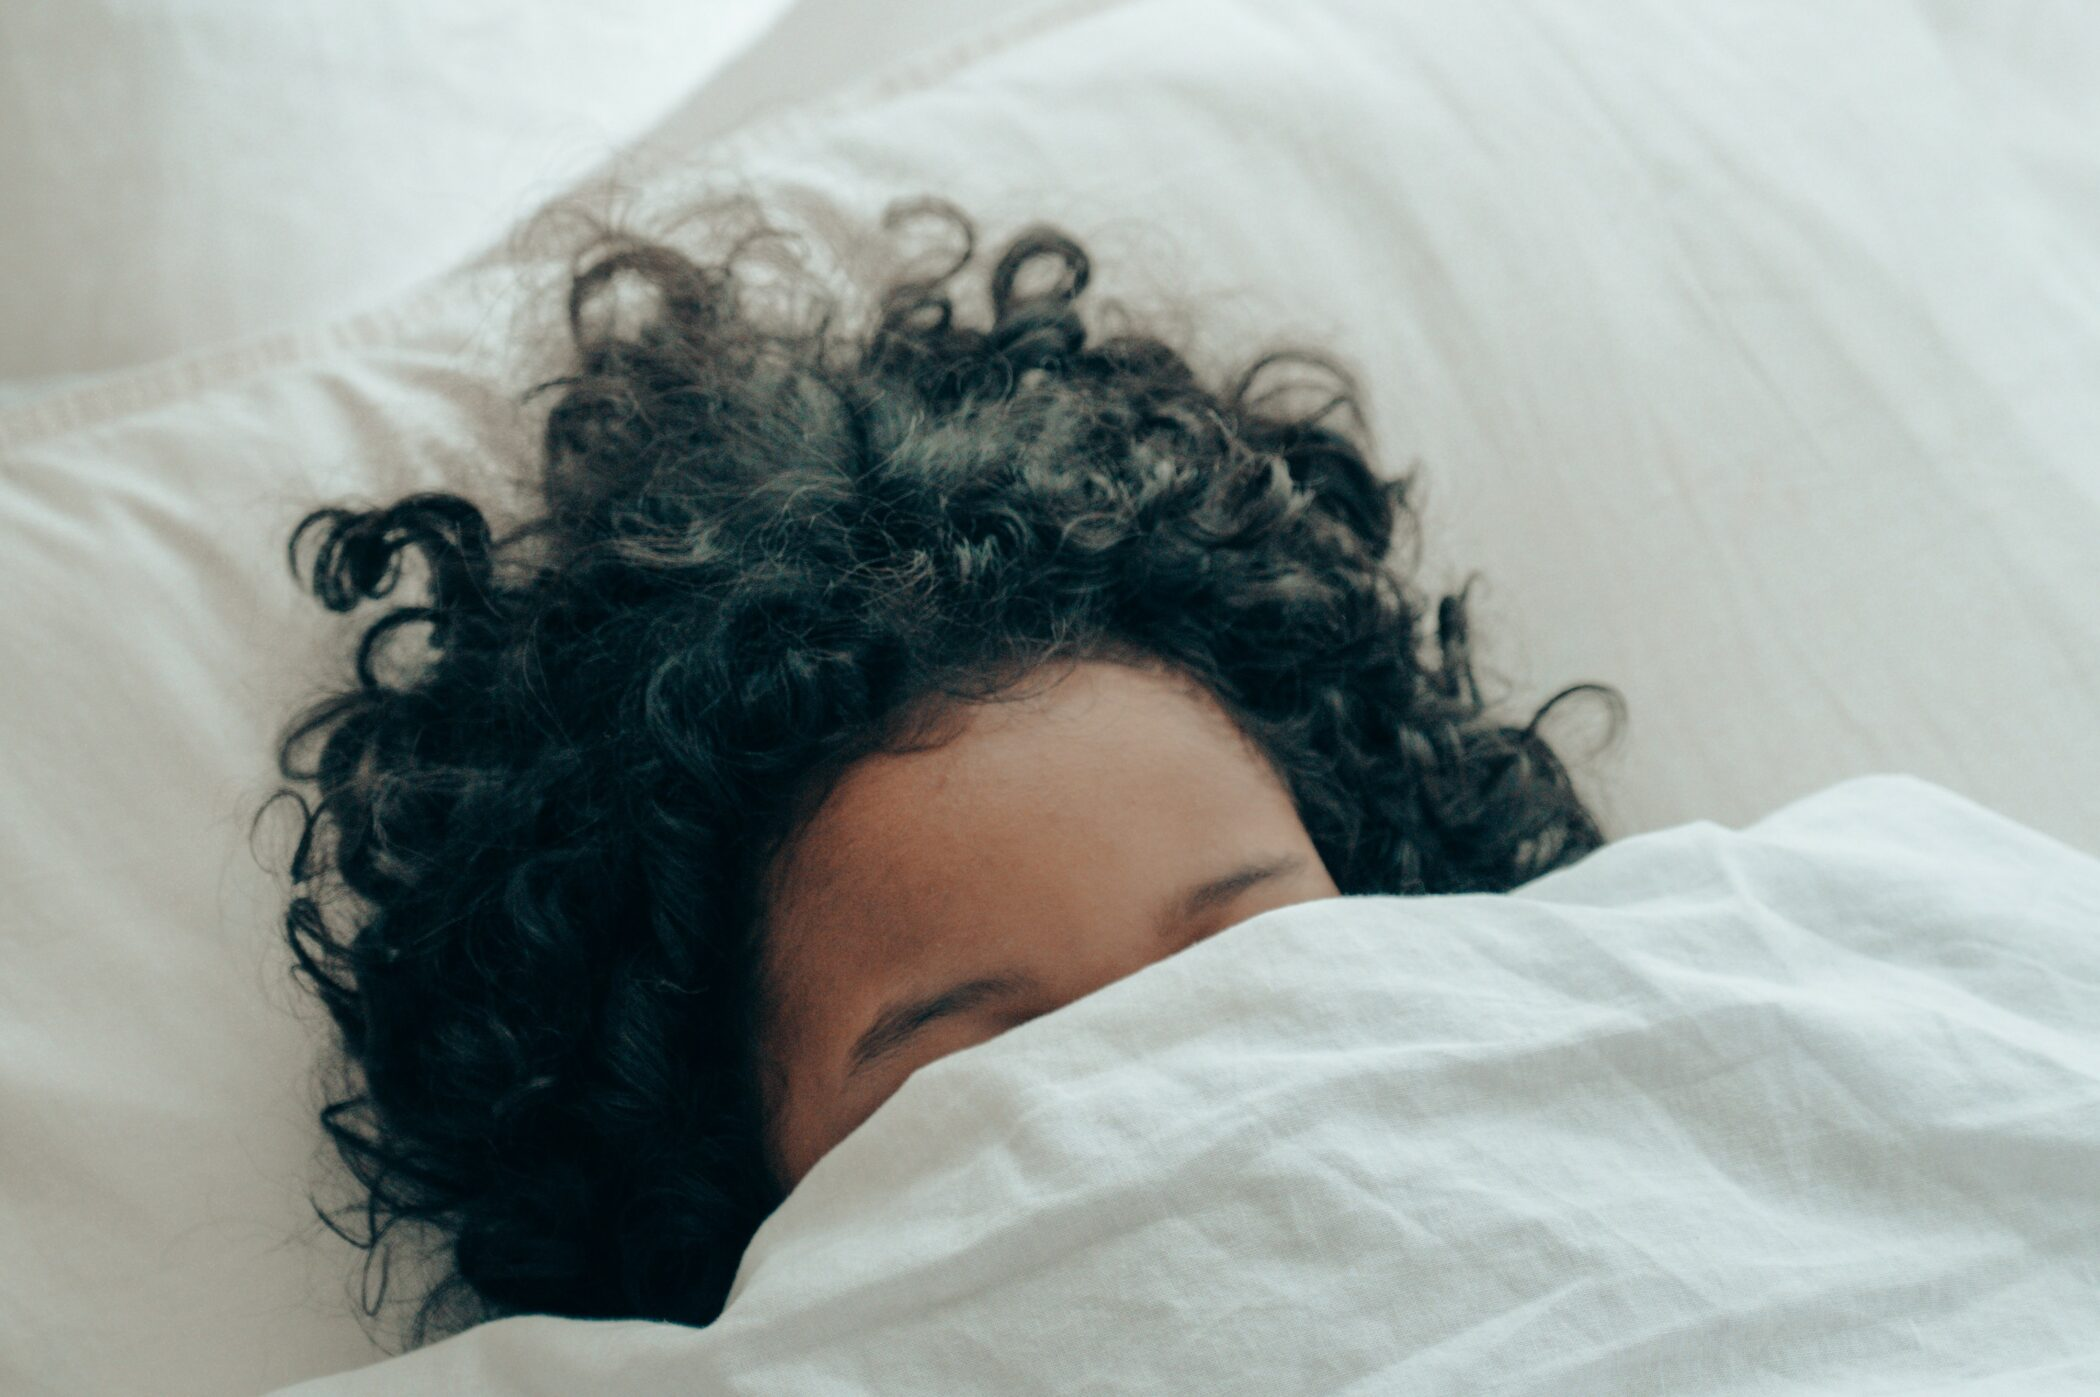 Poor sleep can hurt your chronic condition but CBD tincture for sleep can help you sleep better